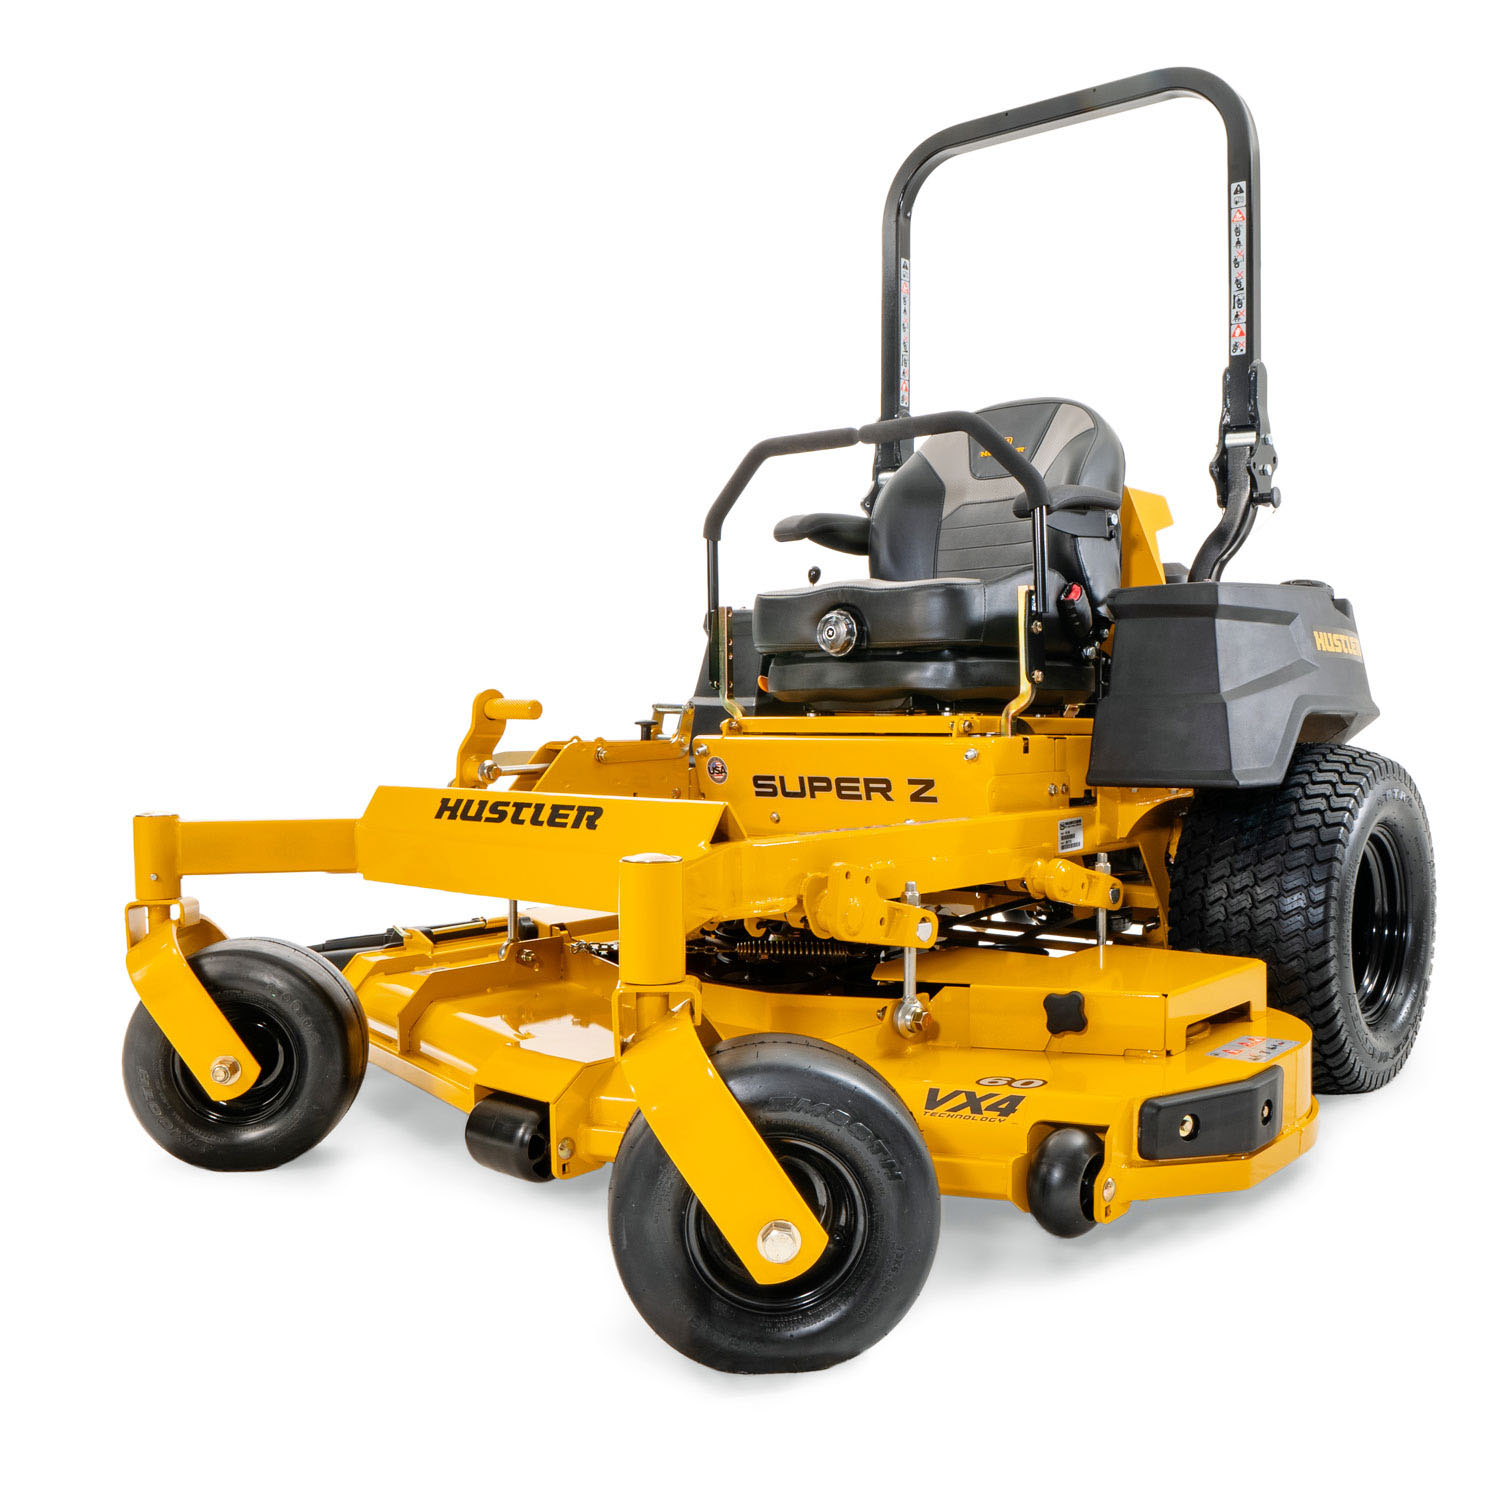 Image of the front three quarters of a yellow mower